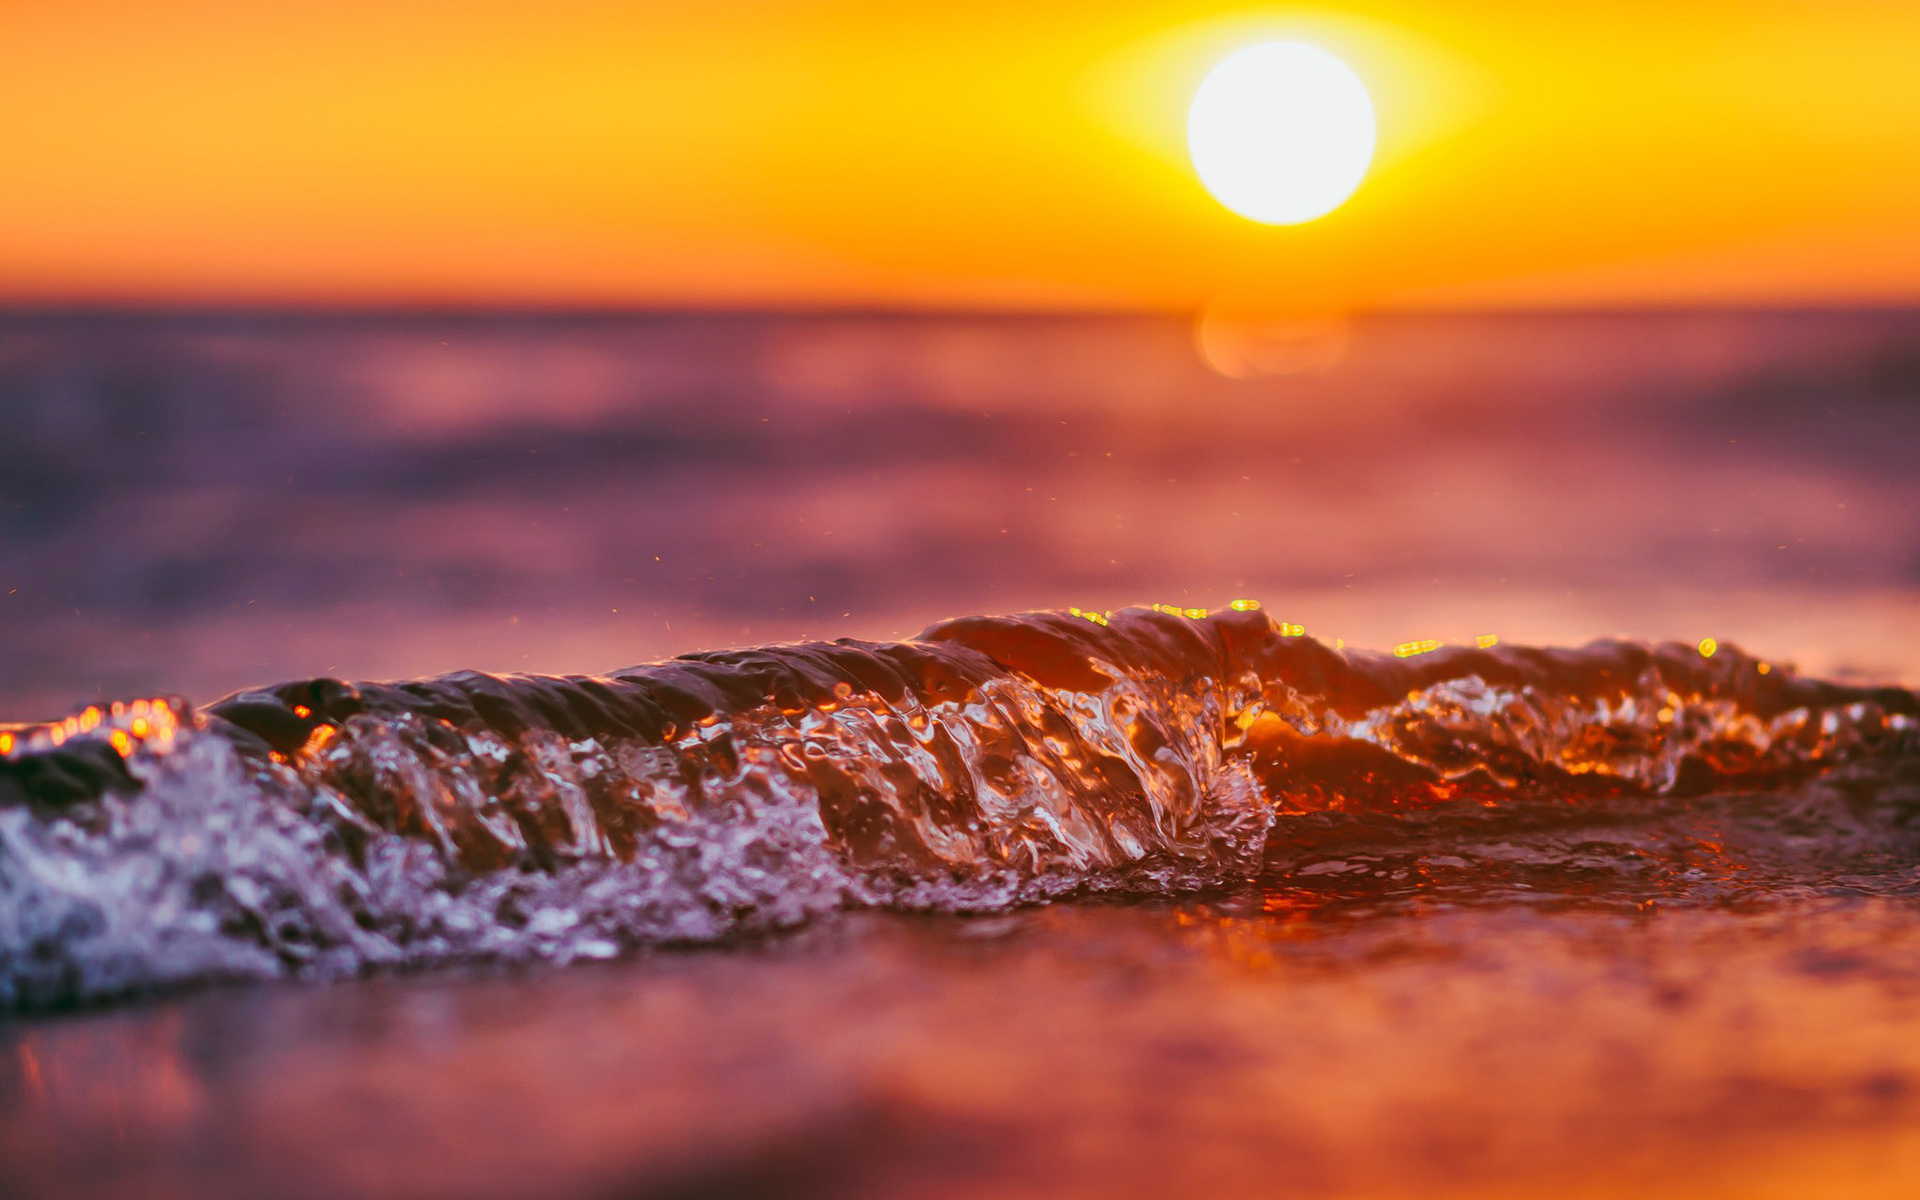 Wave Sunset, HD Nature, 4k Wallpapers, Images, Backgrounds ...